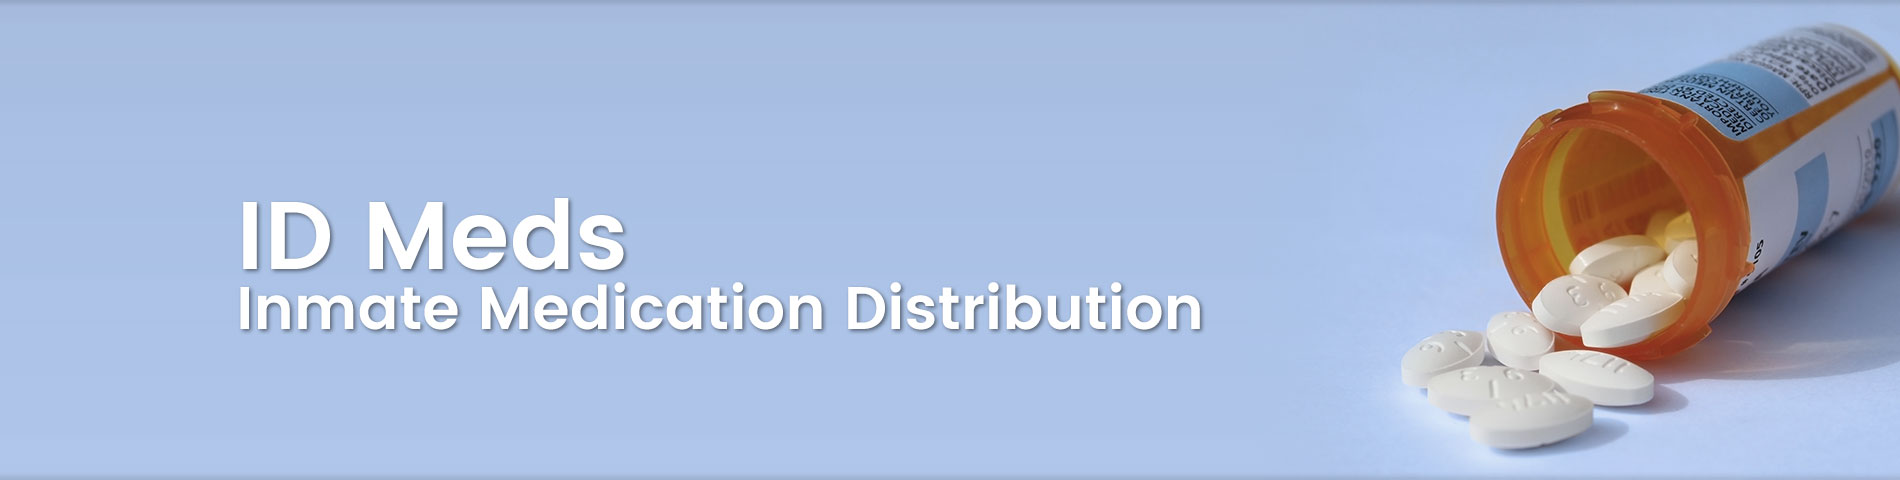 Inmate Medication Distribution Management